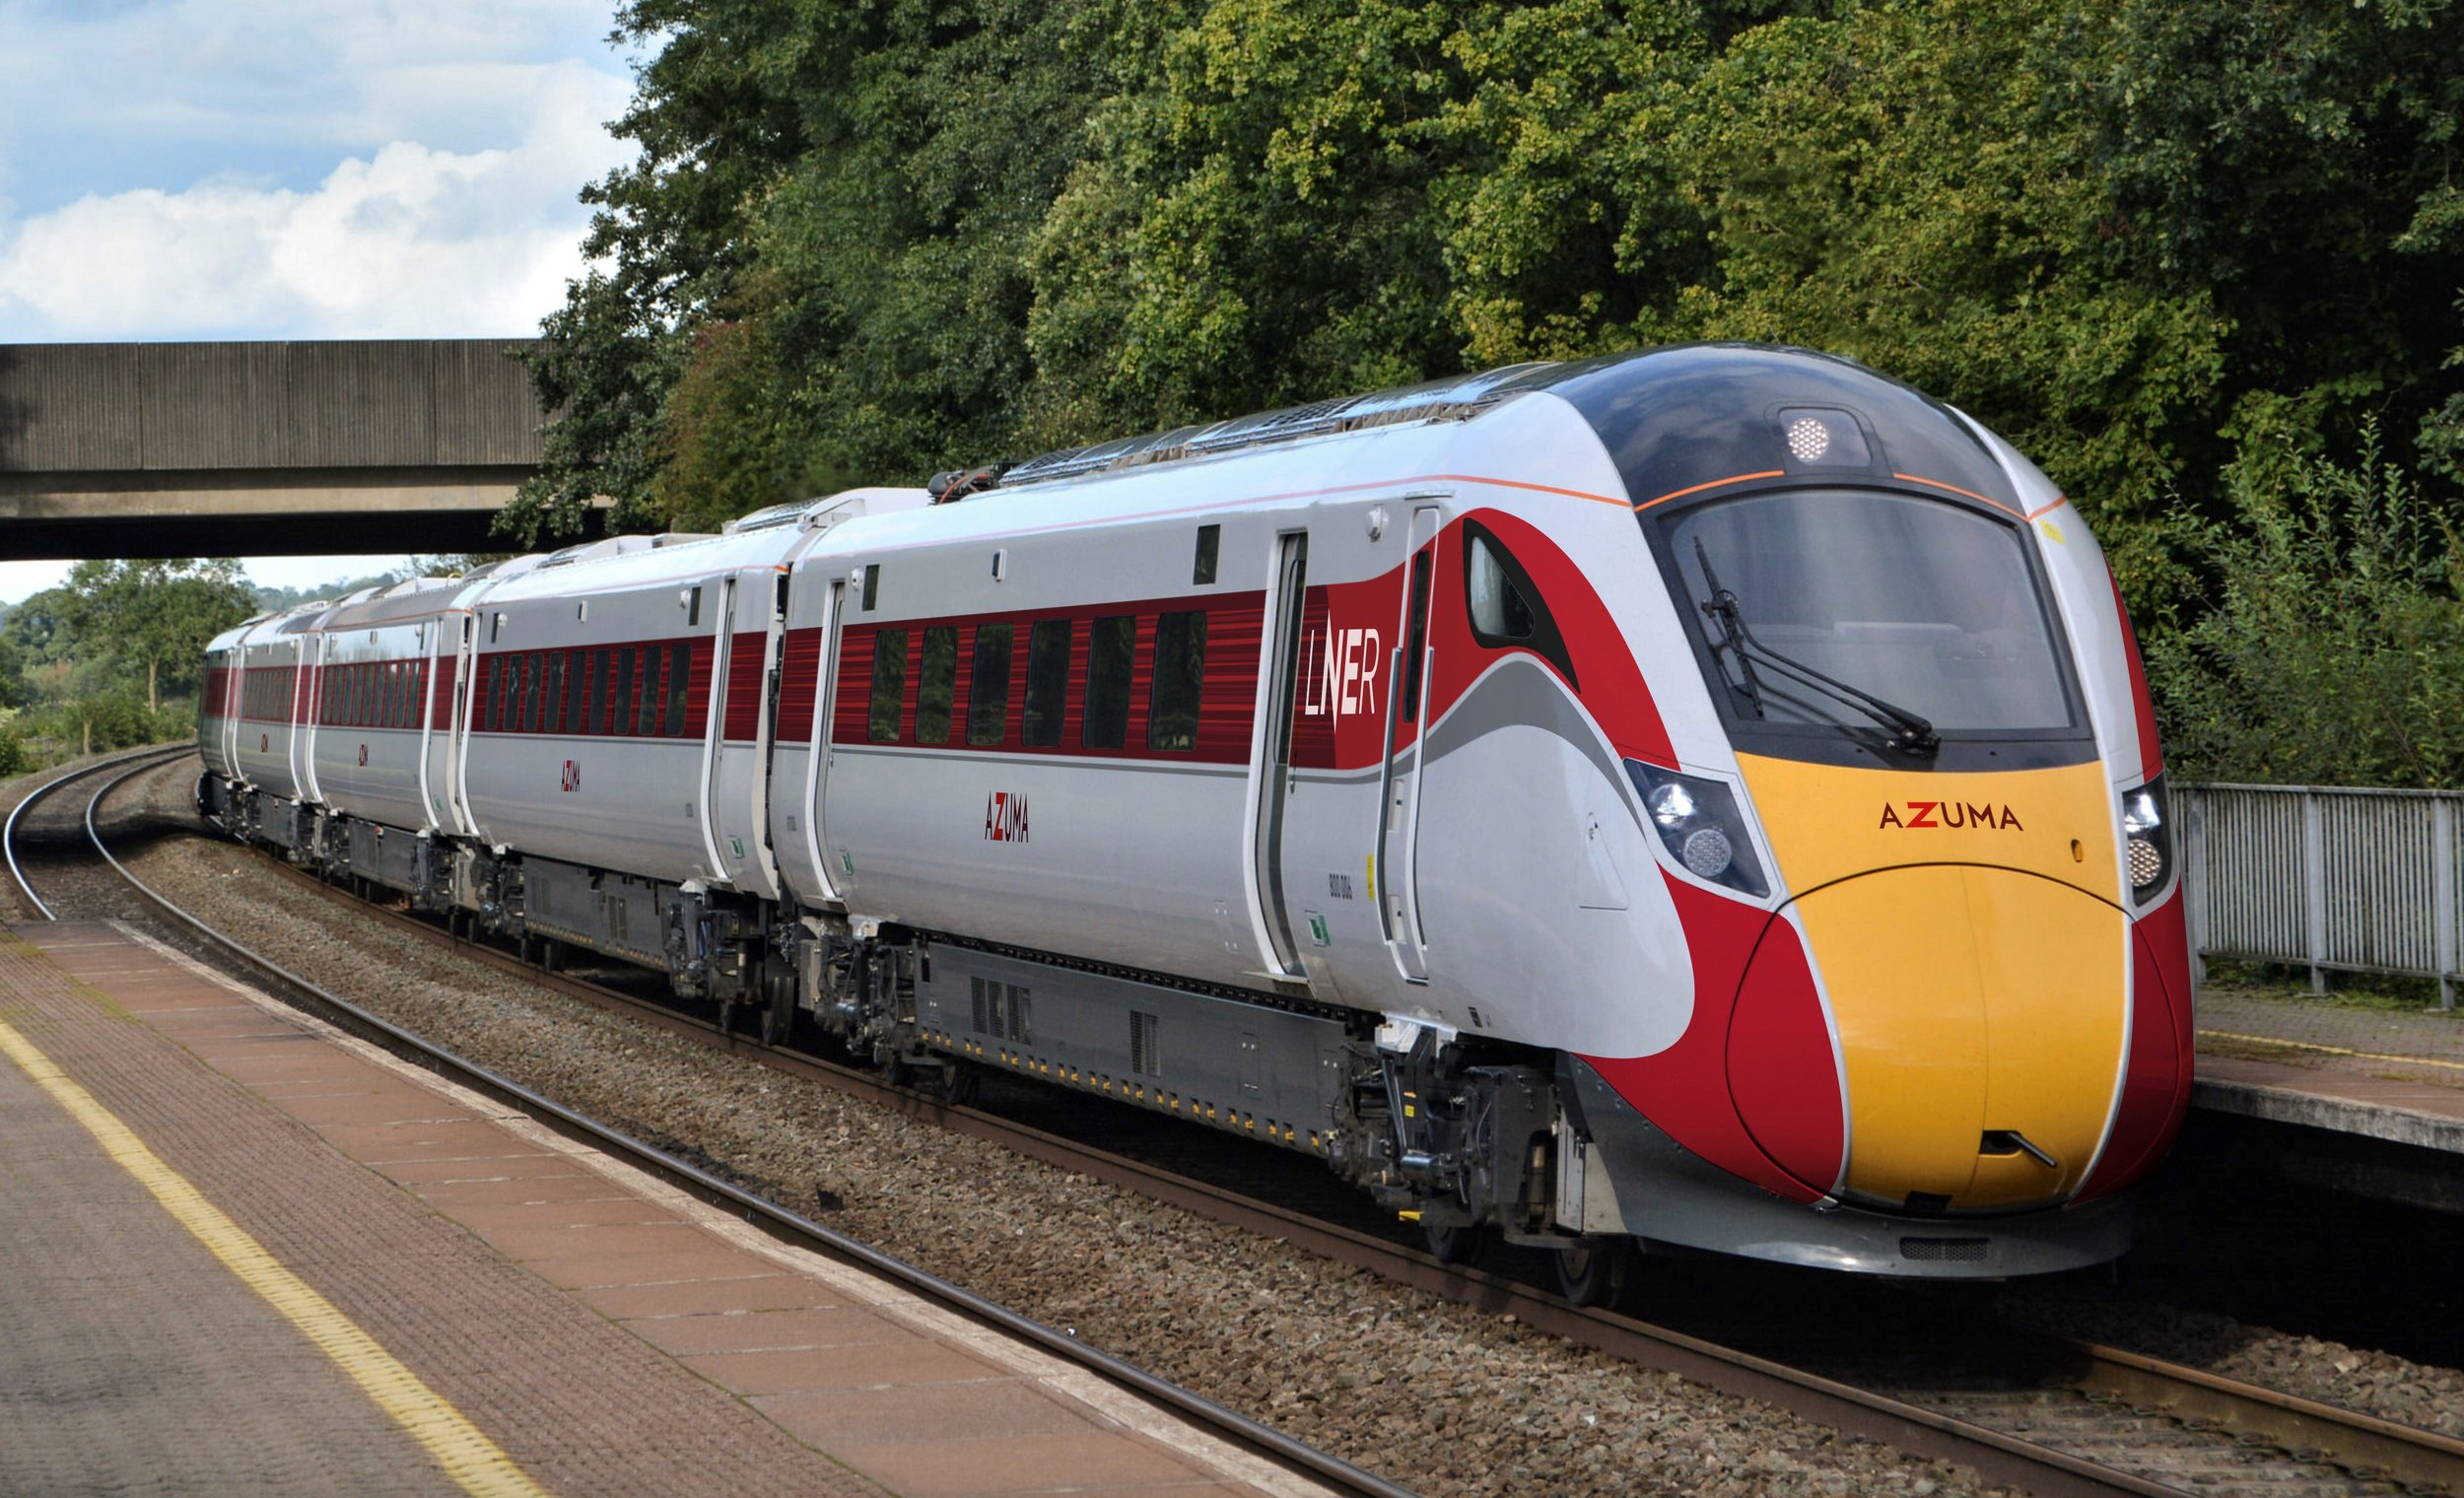 train options - LNER 10:00 AM London Kings Cross - 2:45 PM Edinburgh (4h45m)First class (includes lunch): $512 for 2 ticketsSecond Class ($lunch): $265 for 2 tickets